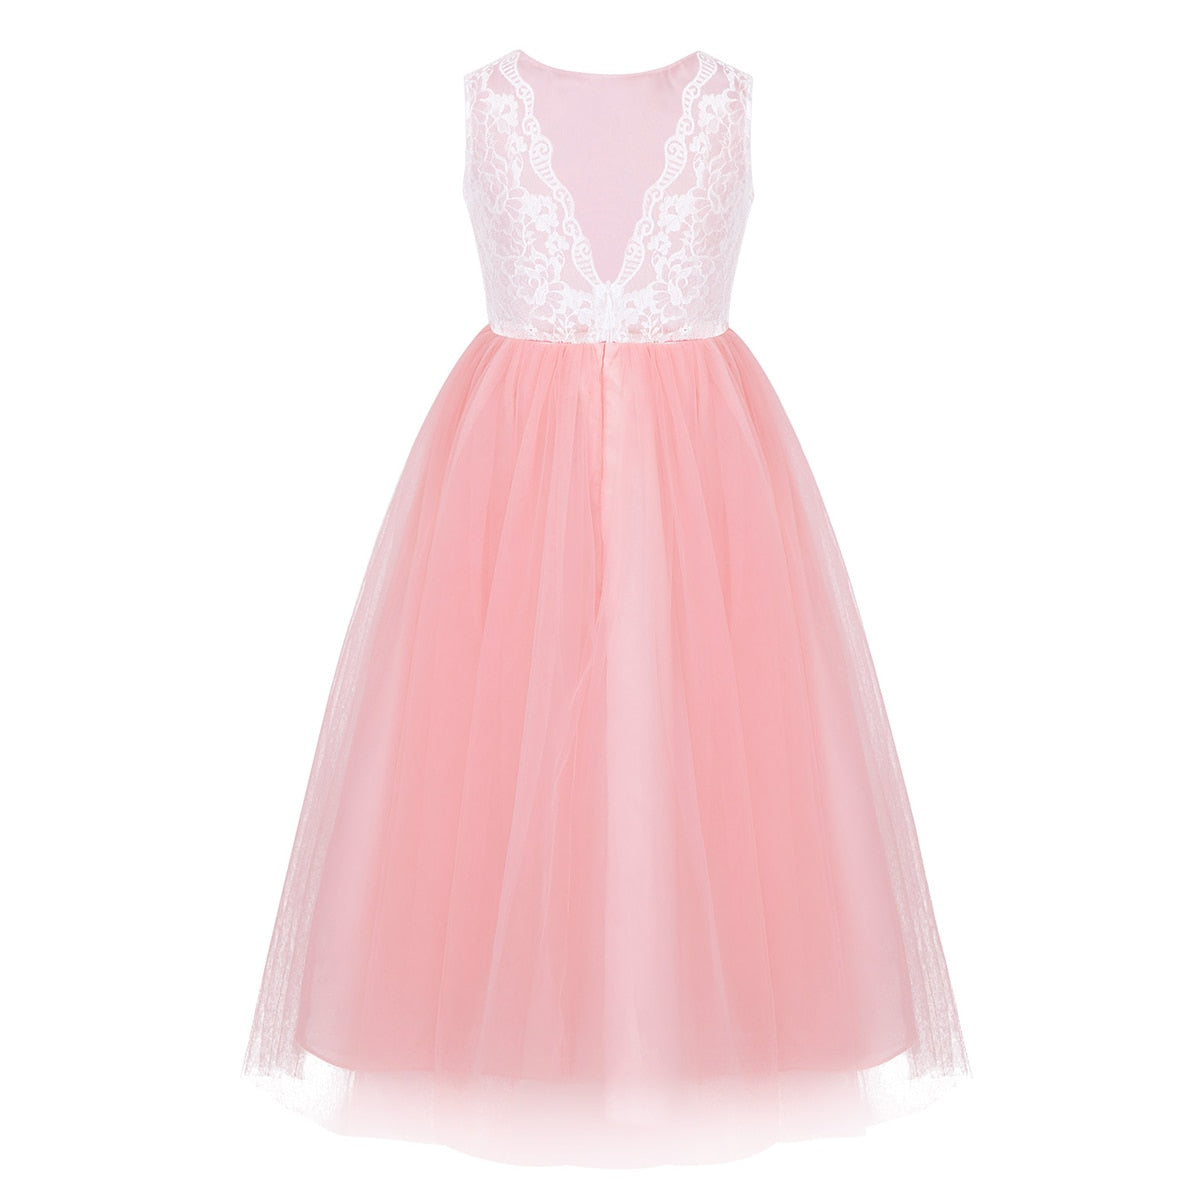 Pink and white flower girl dresses for 8 year olds